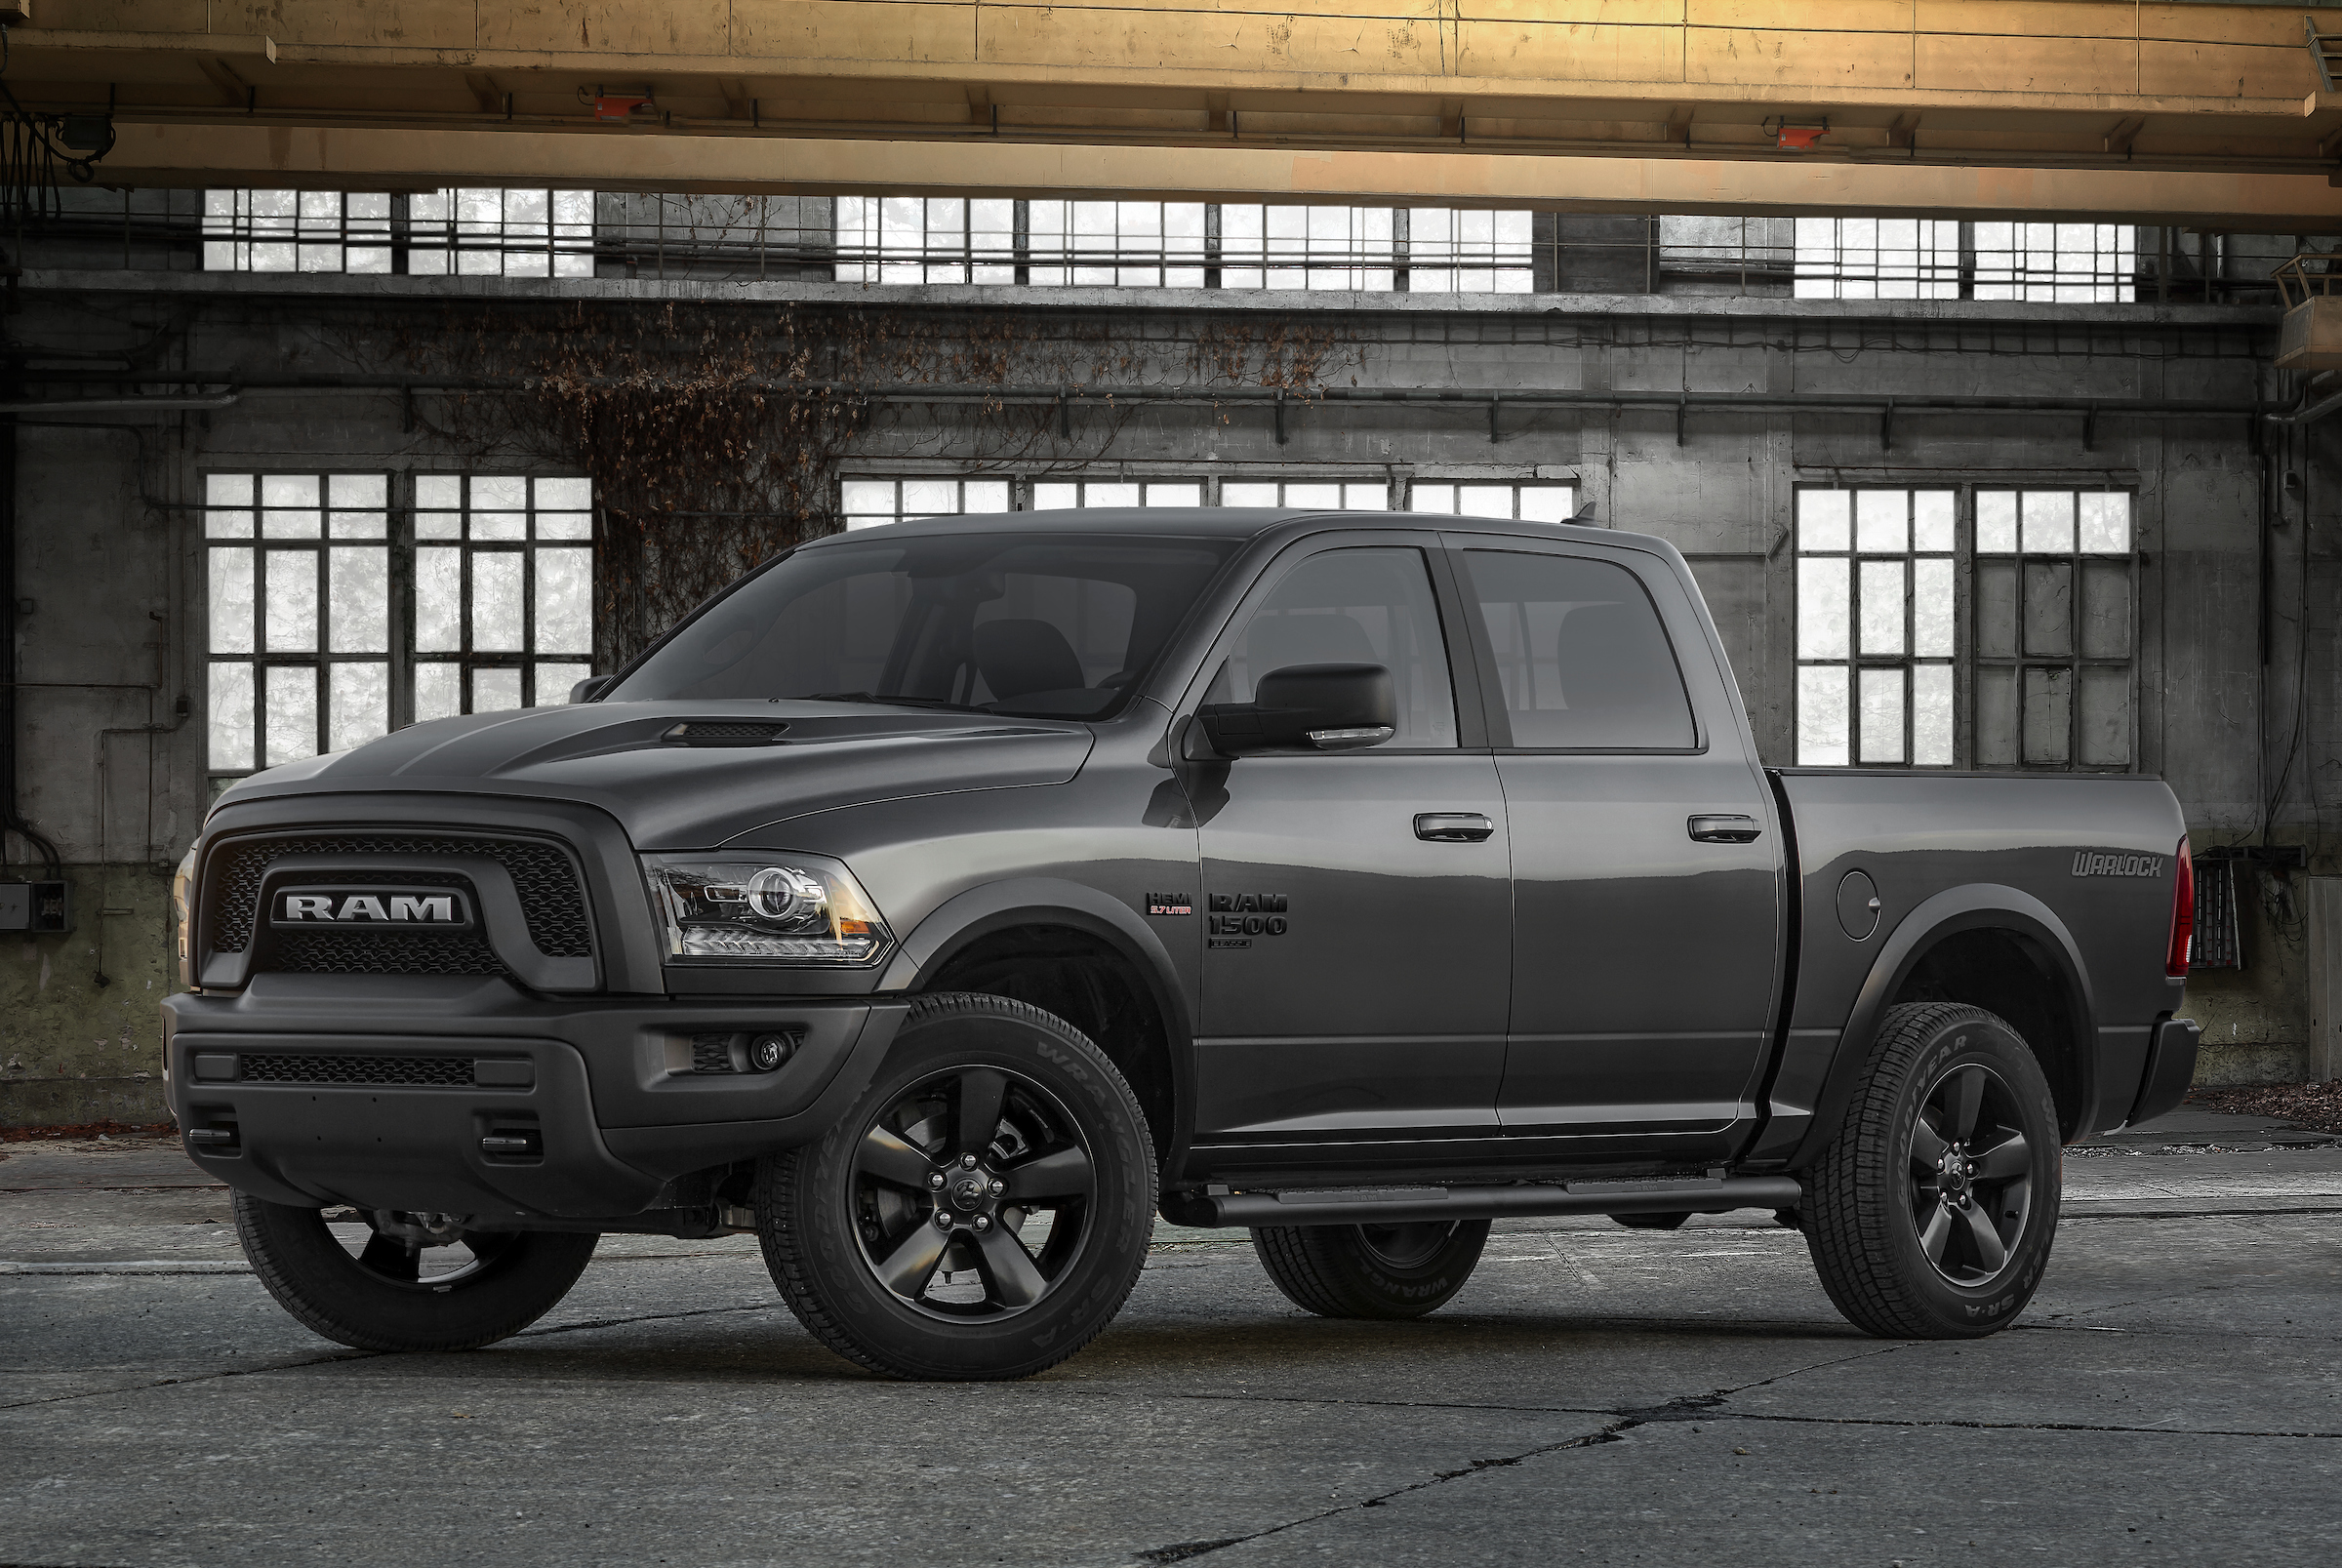 2019 Ram 1500 Classic Warlock Pictures, Photos, Wallpapers ...